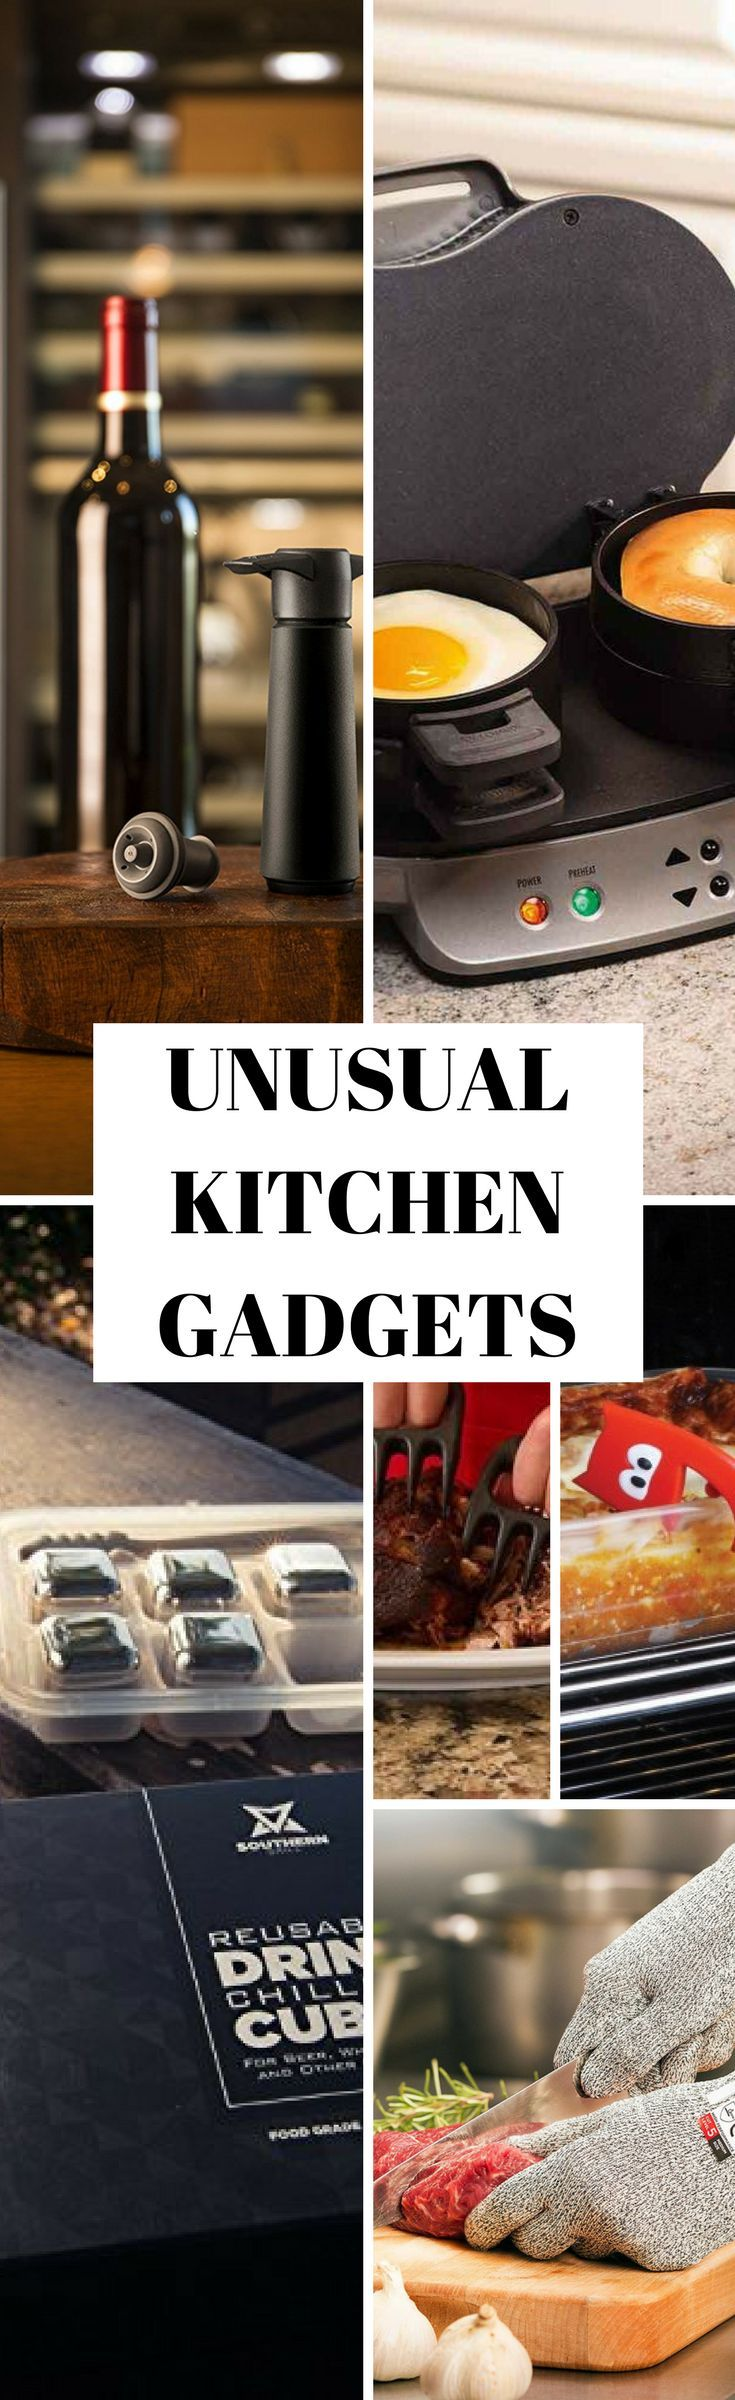 A selection of the best #kitchen #gadgets on the Internet.  Come check them out then PIN this to share the love!  #kitchenideas #gadgetsandgizmosvbs #cooking #cookingtips #tools #kitchenorganization #diet #food #wine #breakfast #dinner #technology #tech #safety #chef